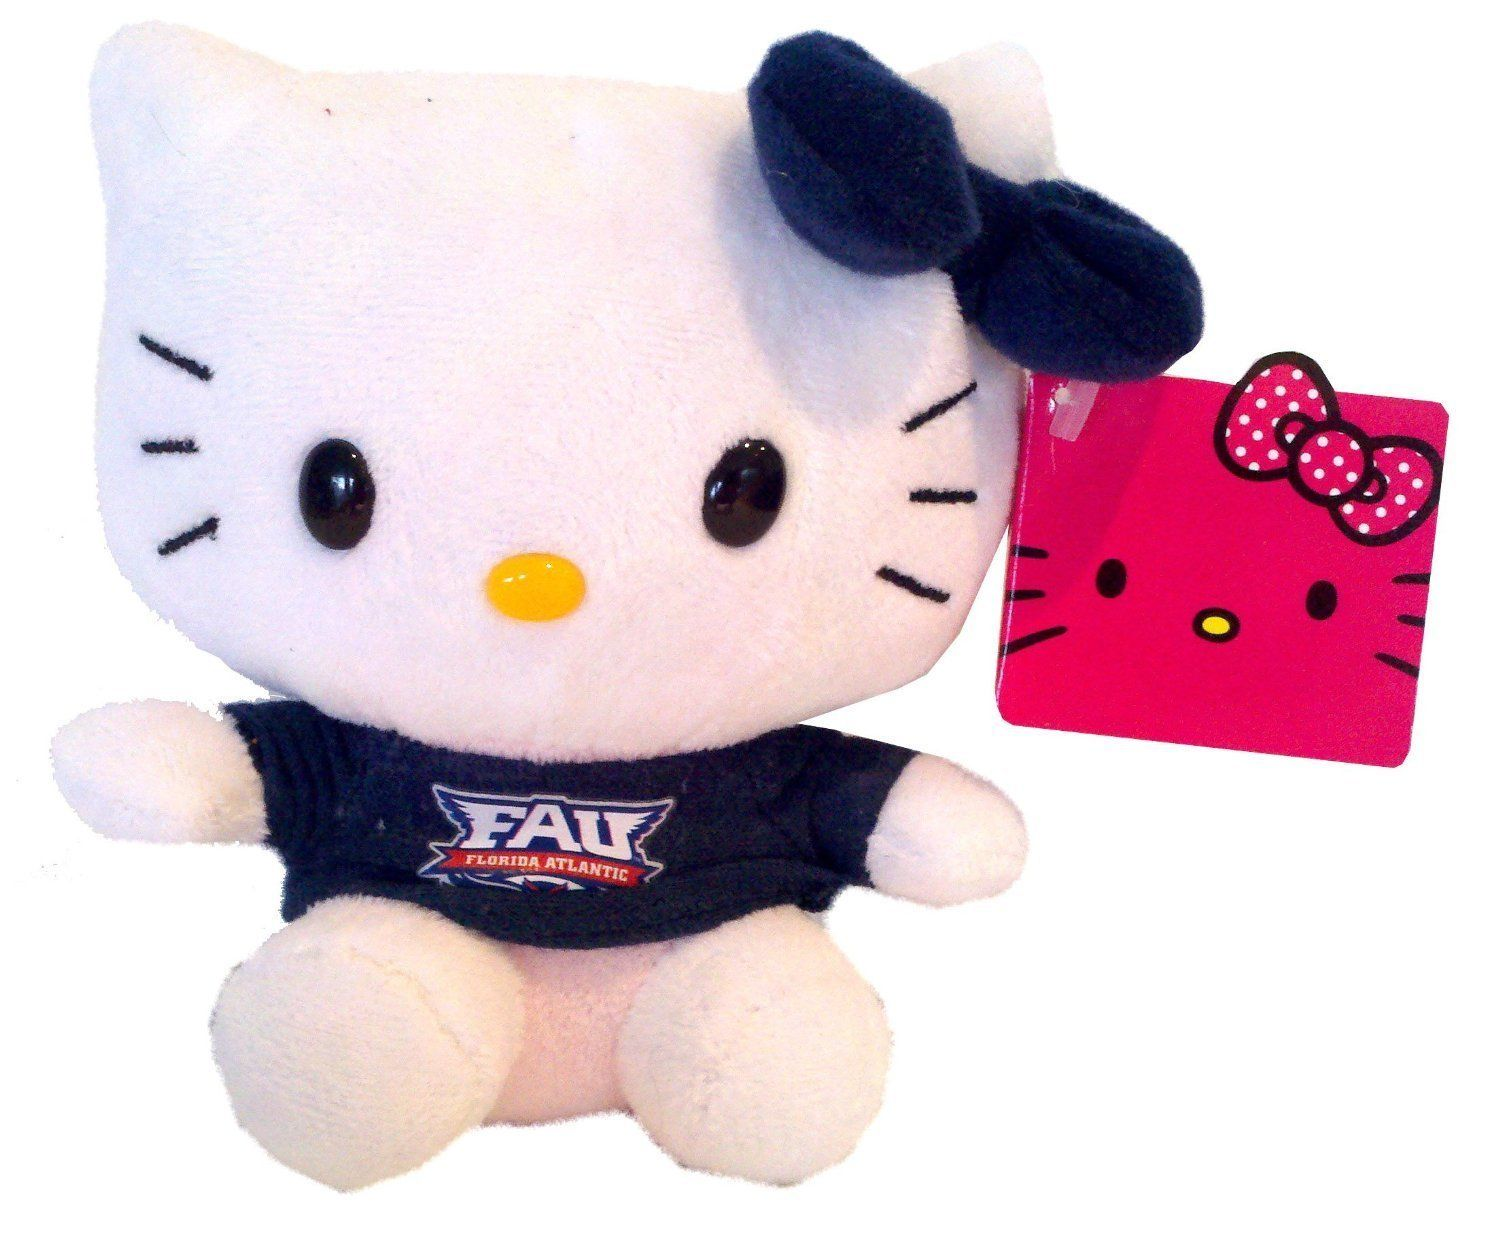 "Hello Kitty Goes to College FAU Florida Atlantic University Owls Plush Toy 11"" by Plushland"